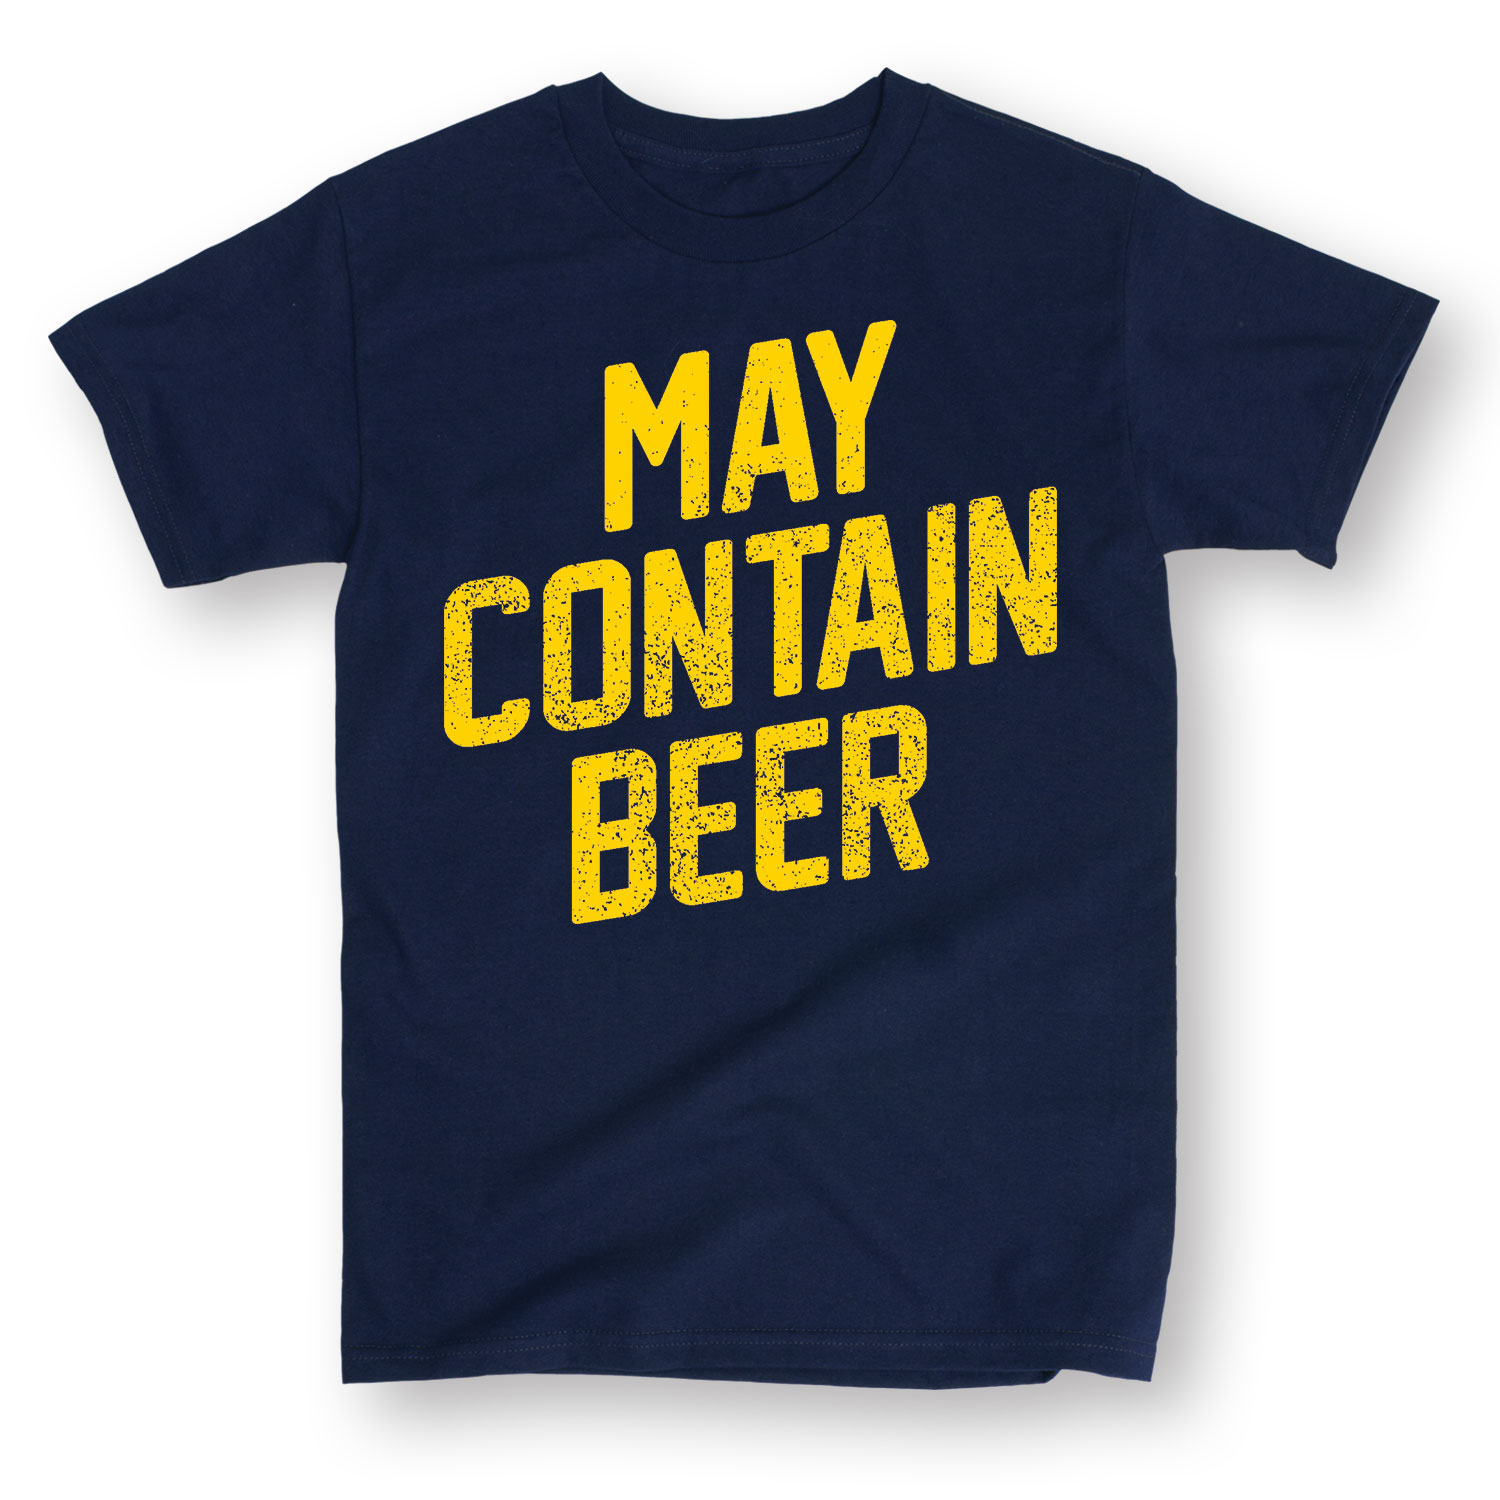 May Contain Beer-MEN ADULT SHORT SLEEVE TEE